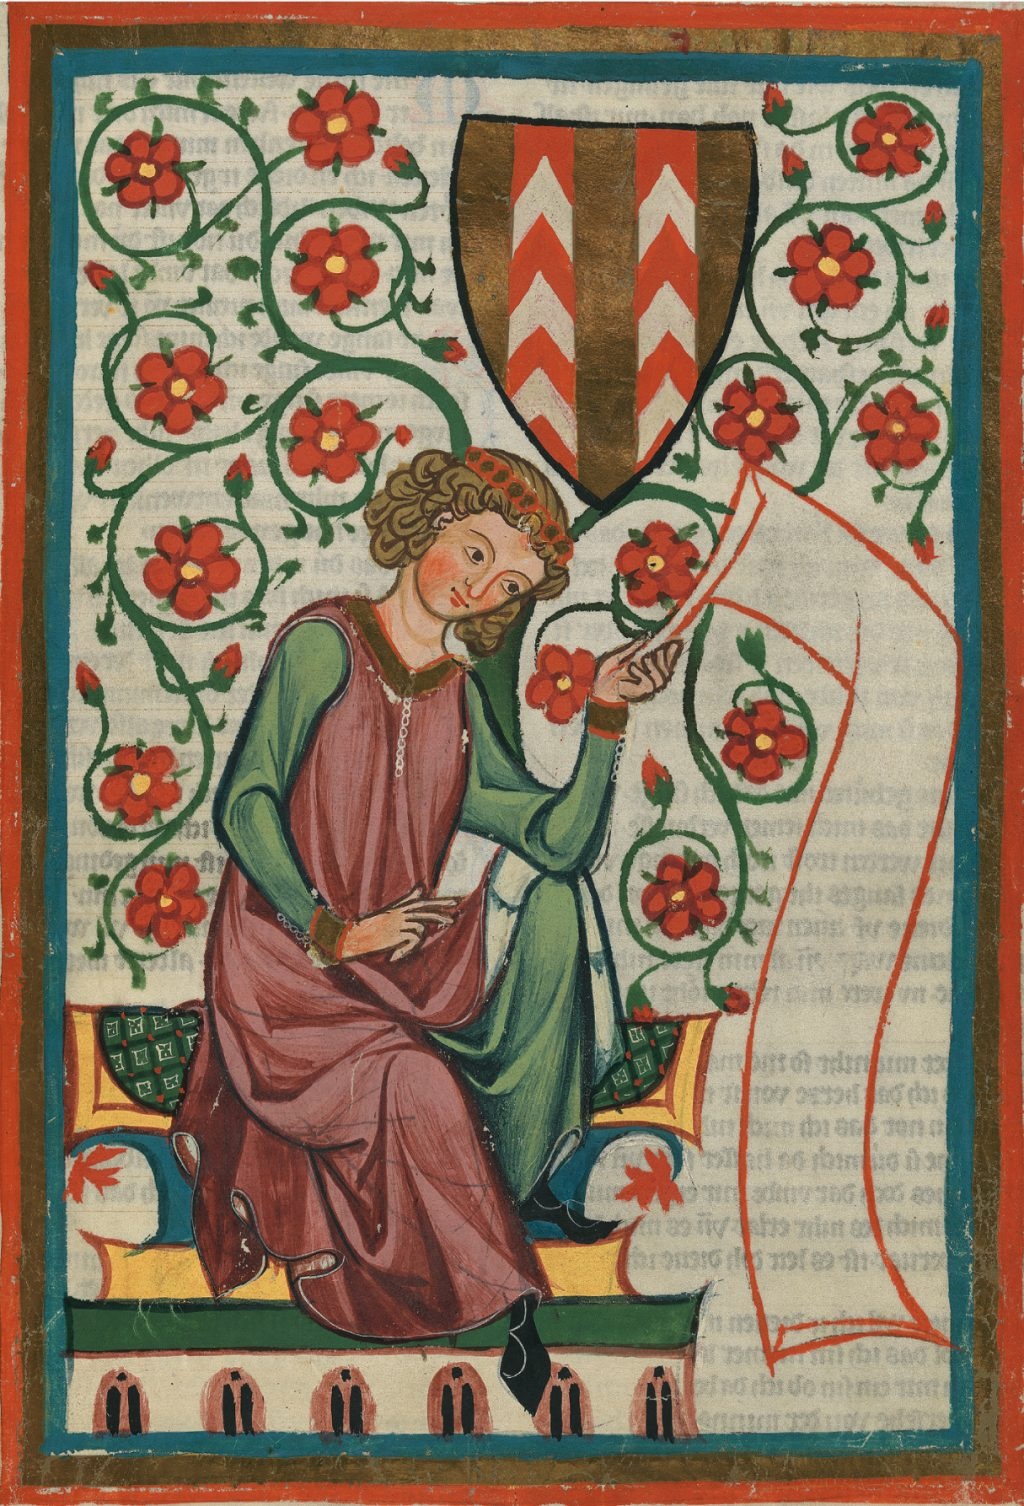 full-page illumination